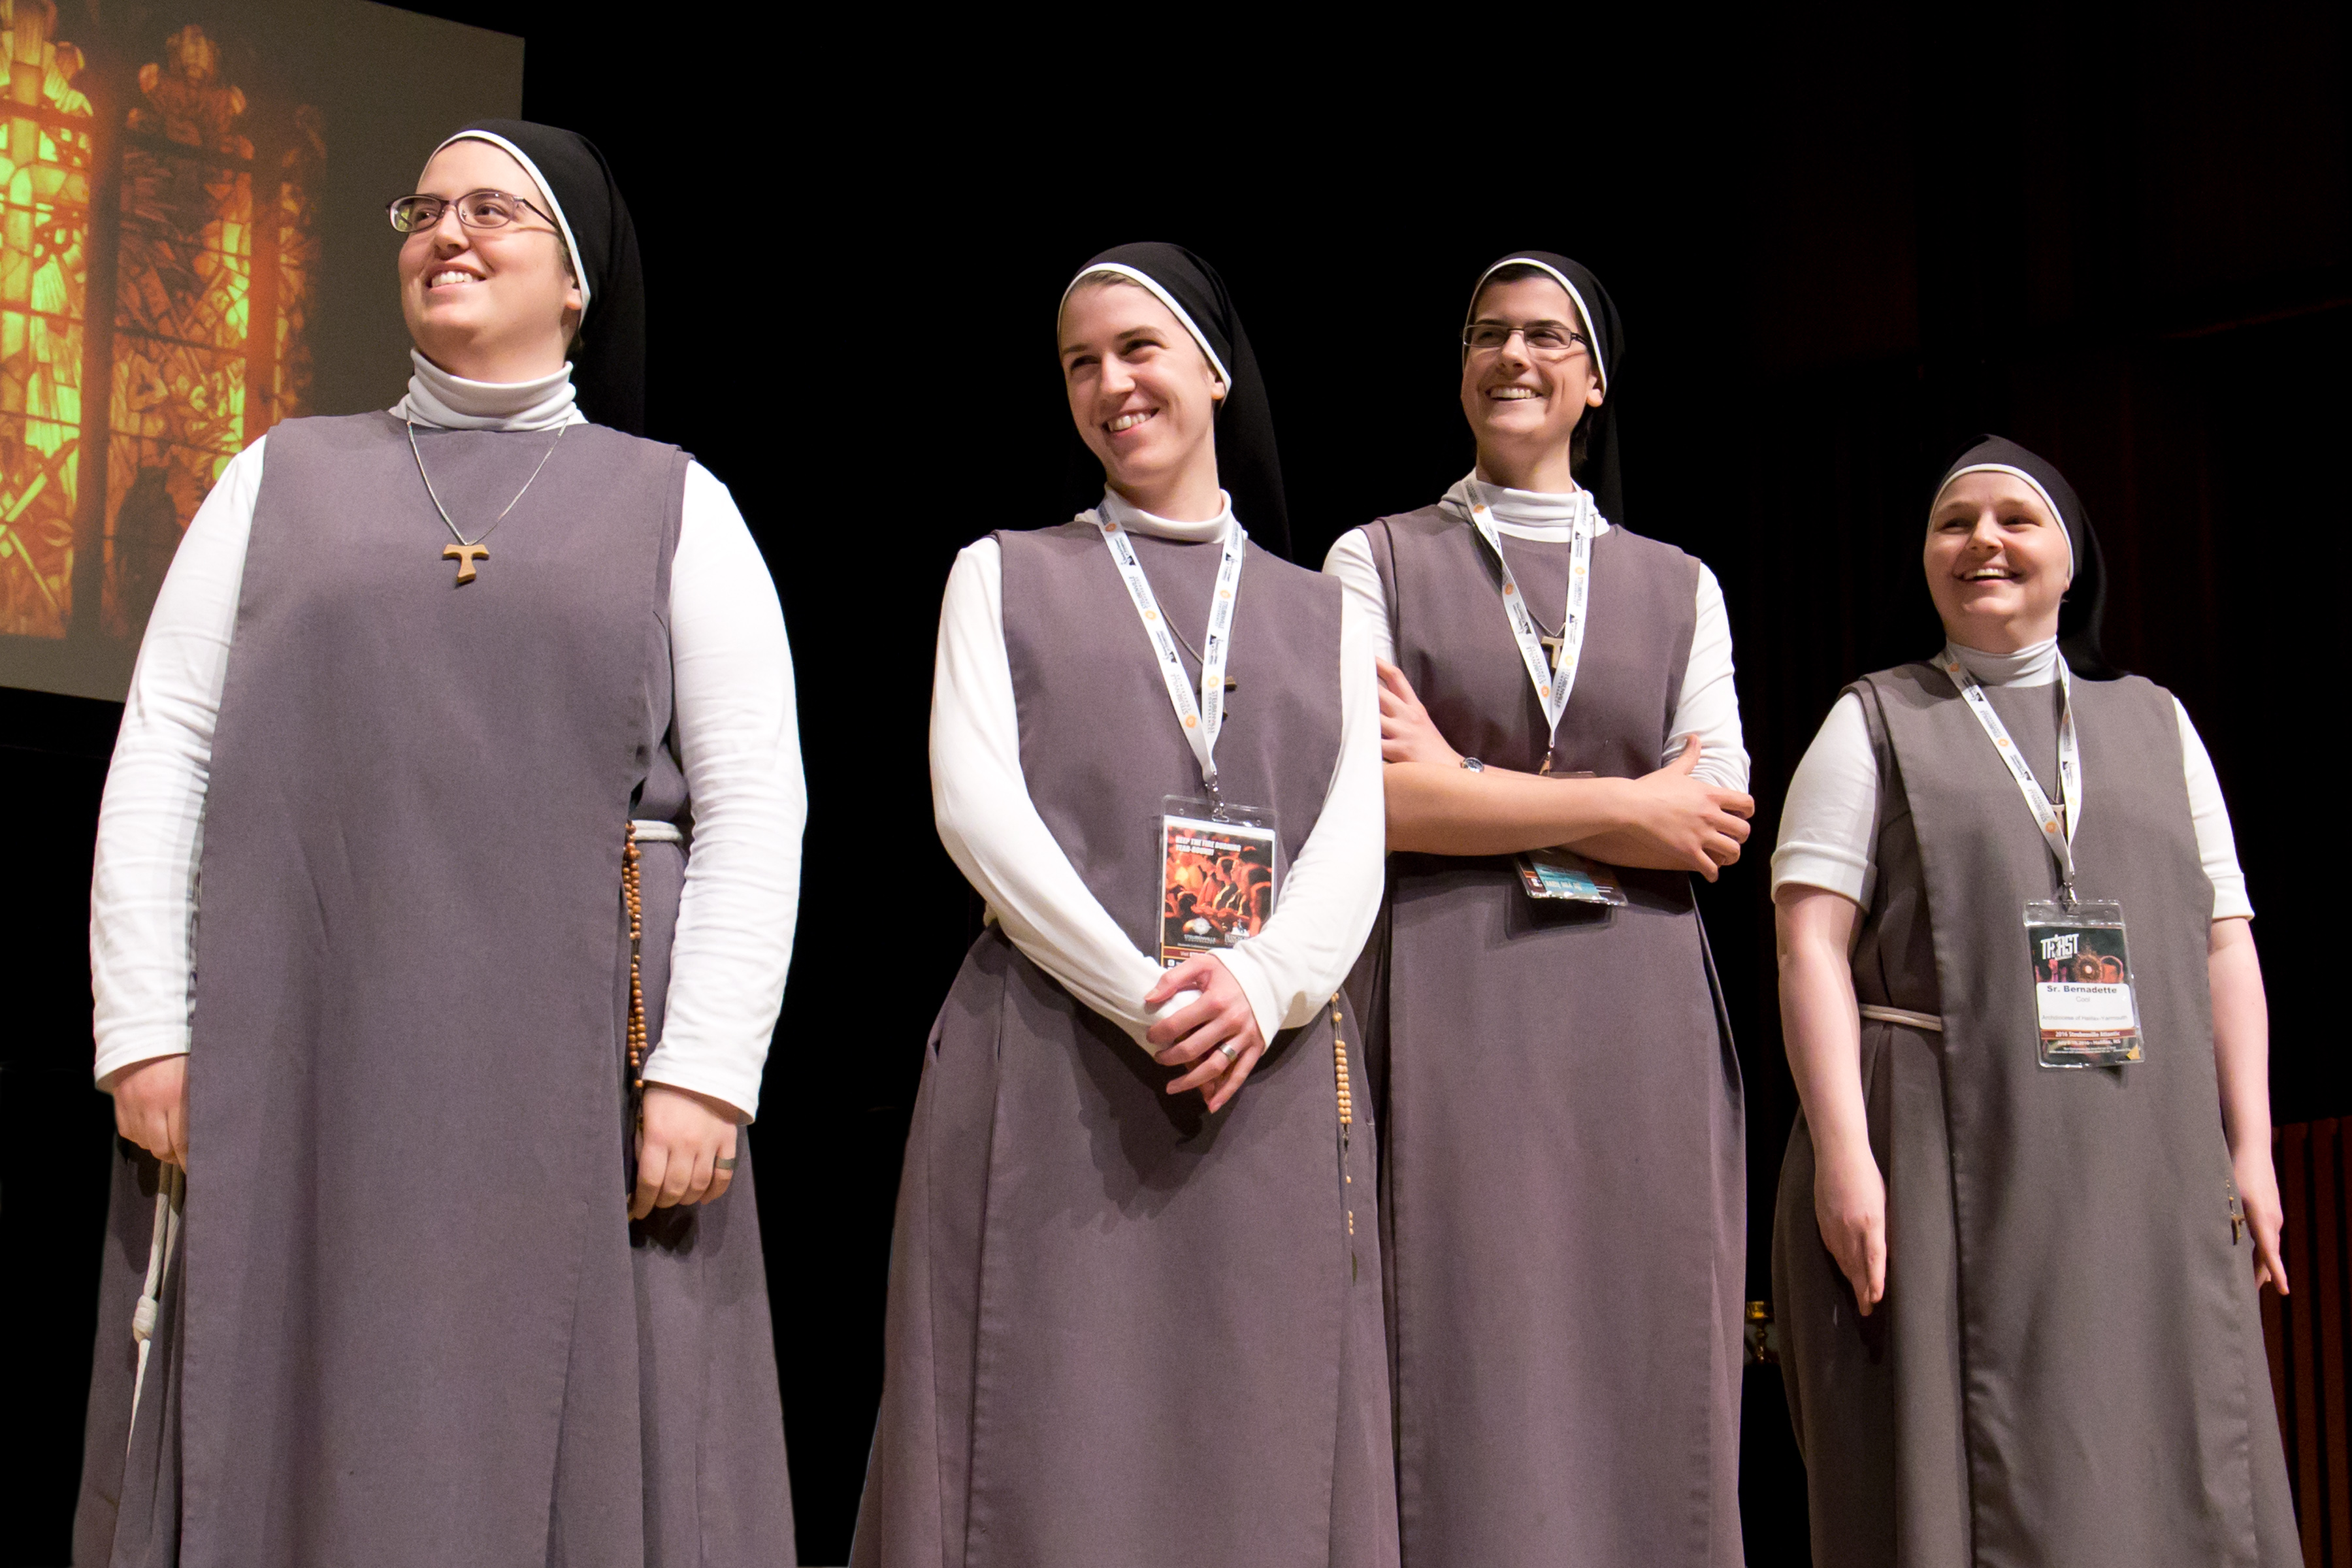 Sisters at Steubenville